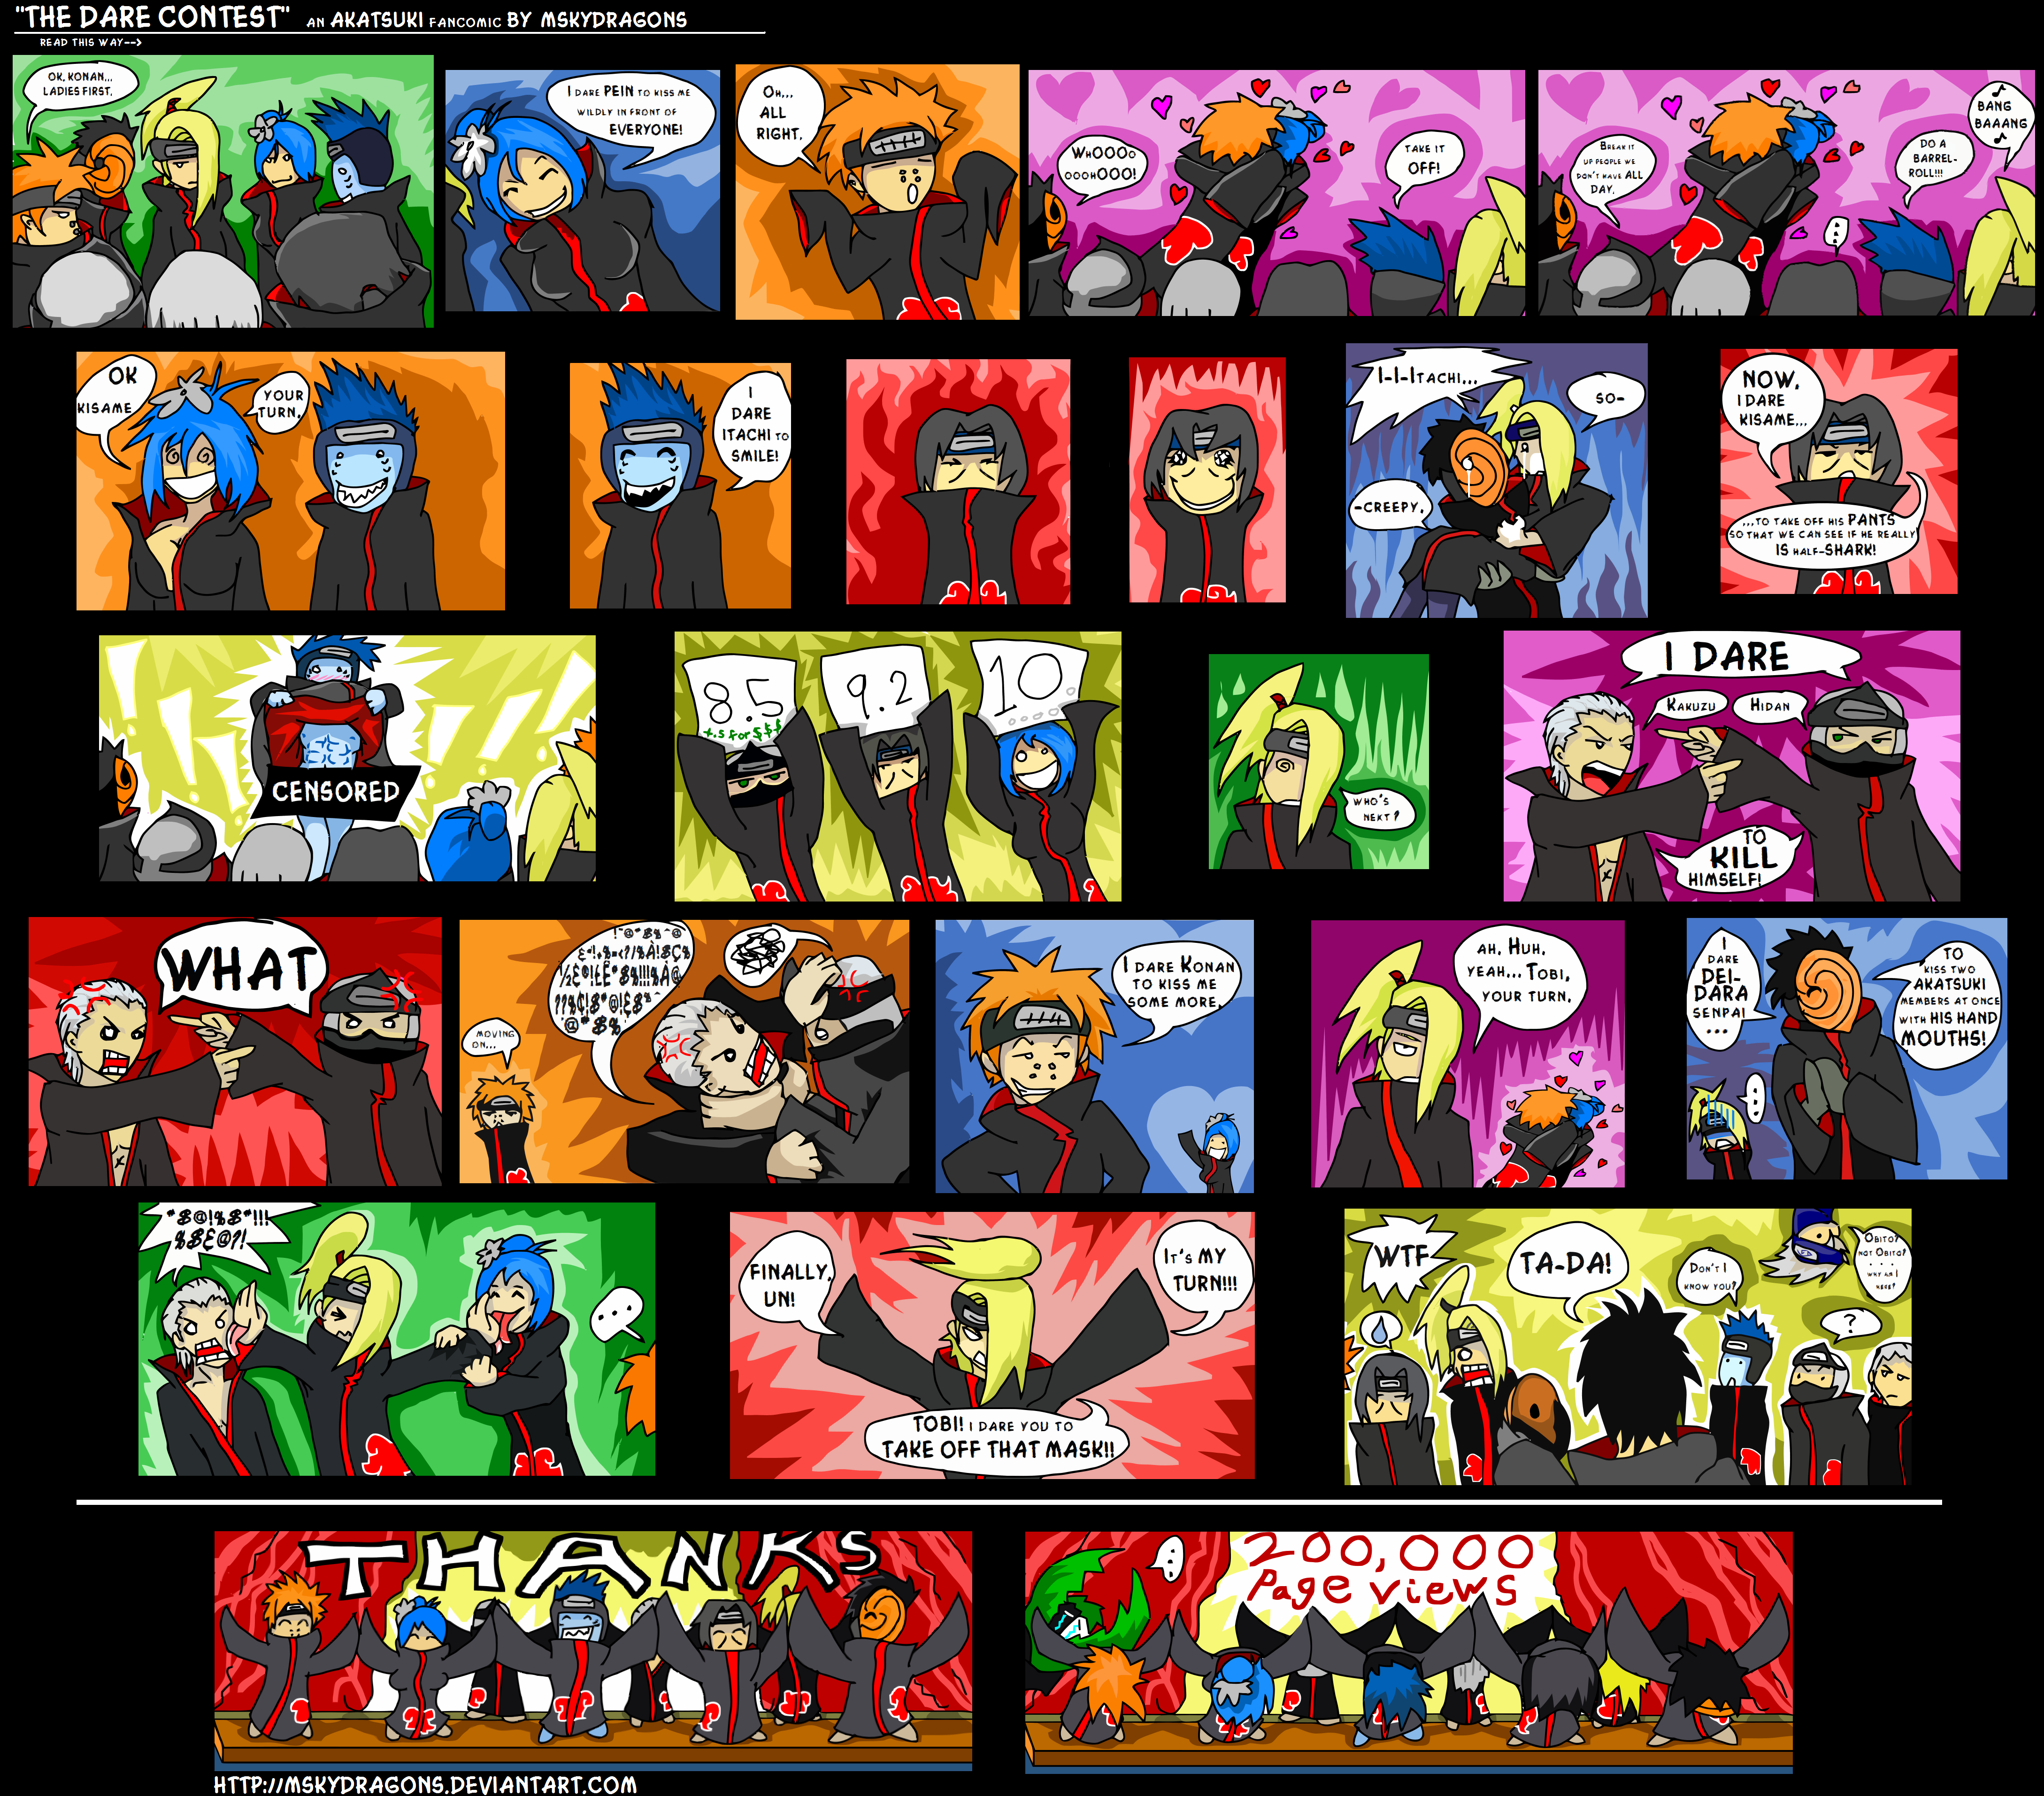 Akatsuki Funny Pic! (You may also post your akatsuki funny pics here!) AKATSUKI_COMIC___THANKS_200K__by_MSkyDragons